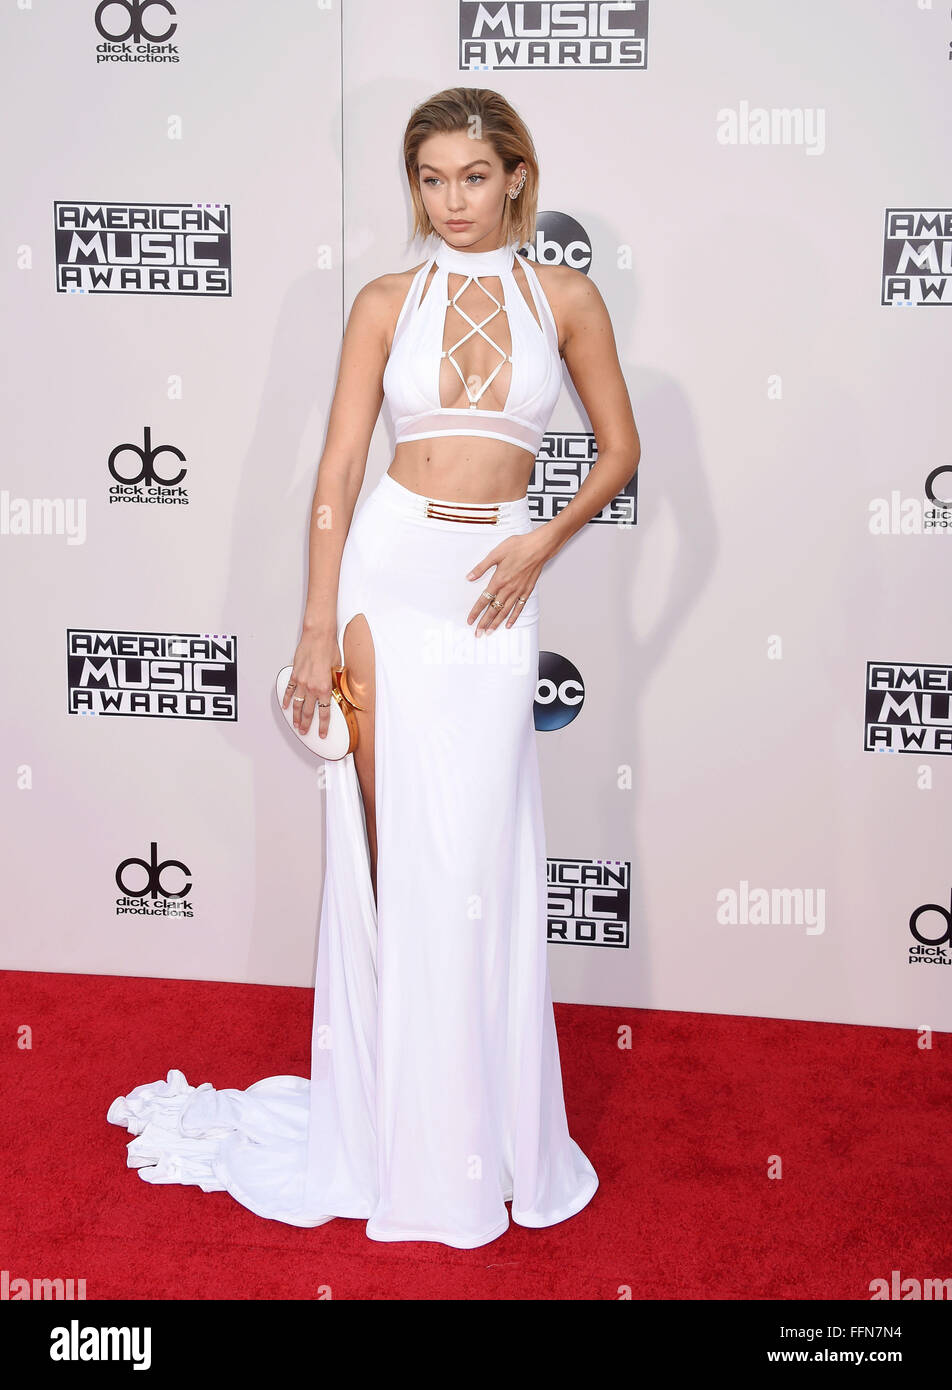 Model Gigi Hadid arrives at the 2015 American Music Awards at Microsoft Theater on November 22, 2015 in Los Angeles, Stock Photo